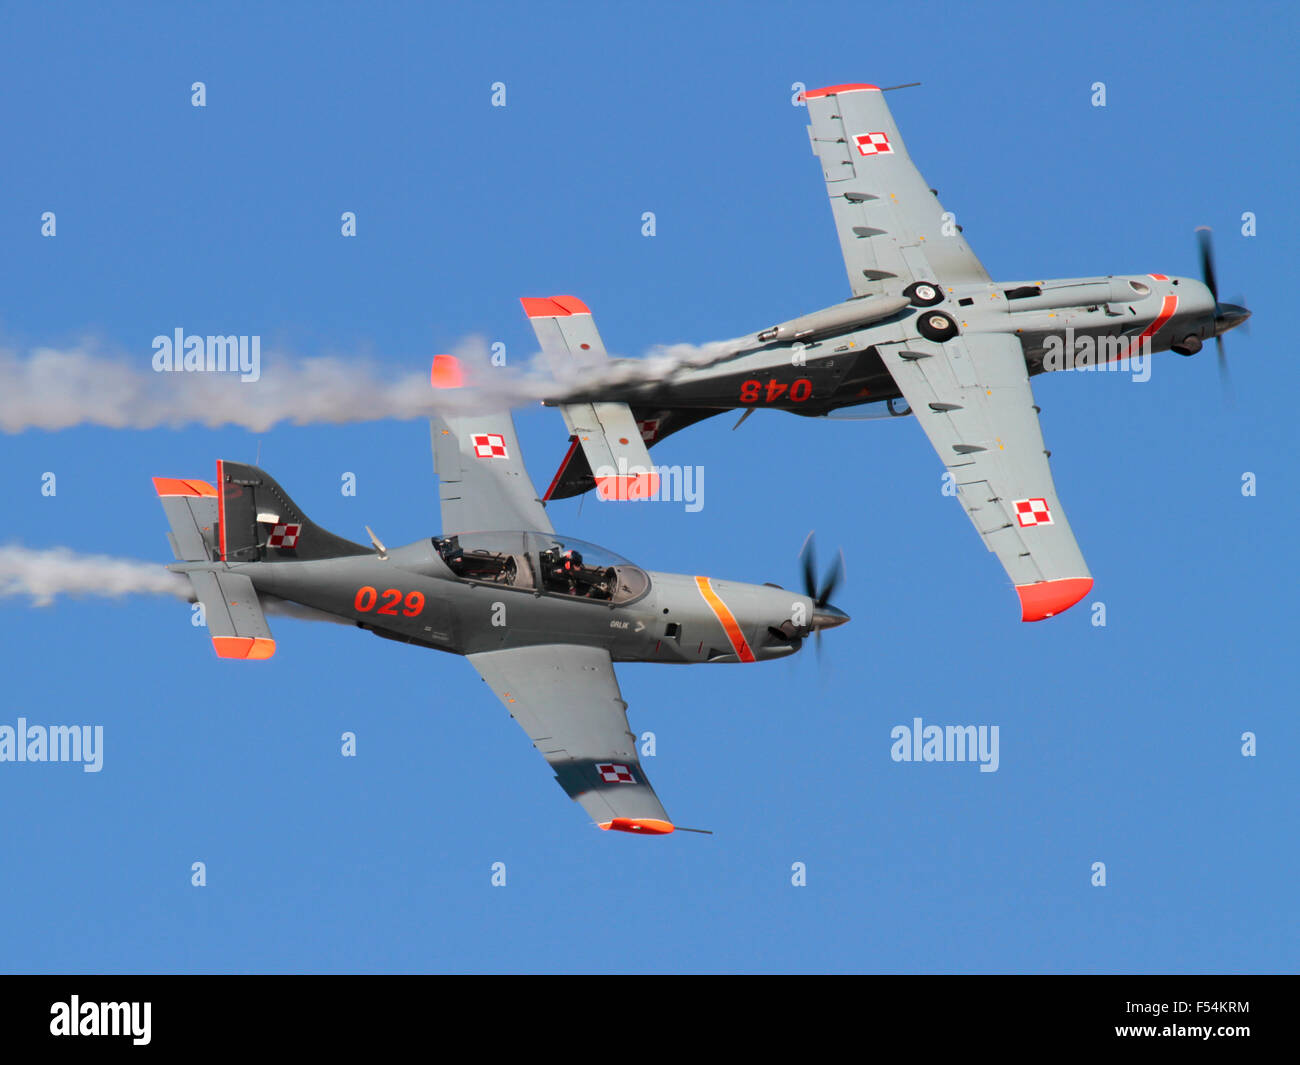 PZL-130 Orlik trainer aircraft of the Polish Air Force flying in formation during an air display - Stock Image